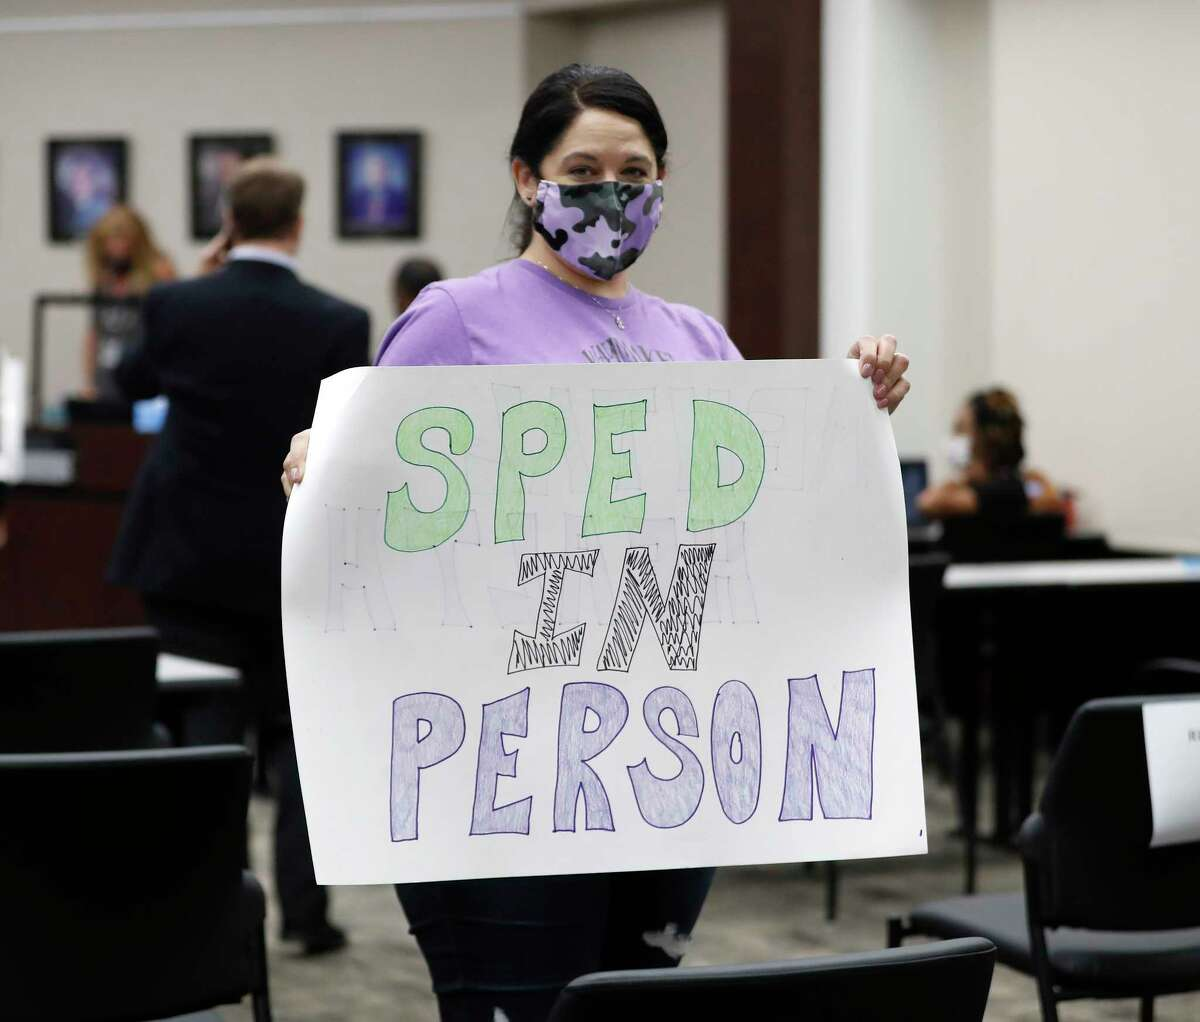 """Francesca Pepiton holds a sign that says """"SPED in person"""" as she was advocating for her best friend whose autistic son is only able to learn in person, and she has children in the Humble school district during the Humble ISD board meeting to discuss the reopening of schools, Monday, August 3, 2020, in Humble."""